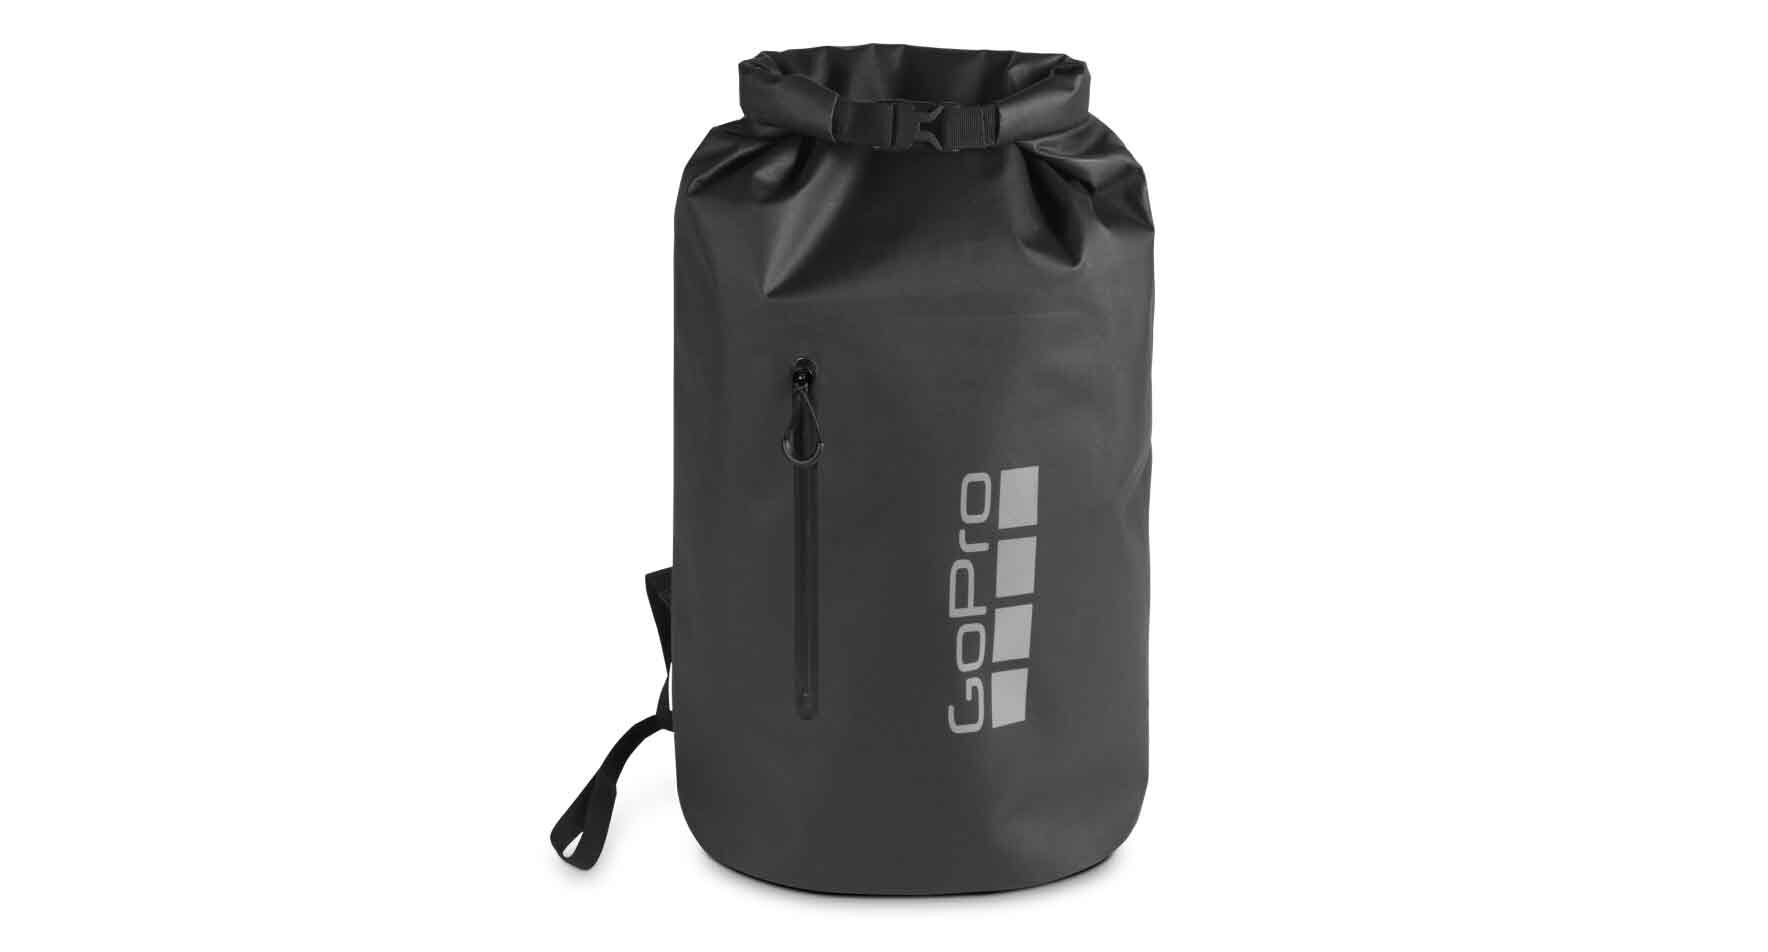 storm dry waterproof backpack 1440 1 GoPro Launch Range Of Active Lifestyle Products